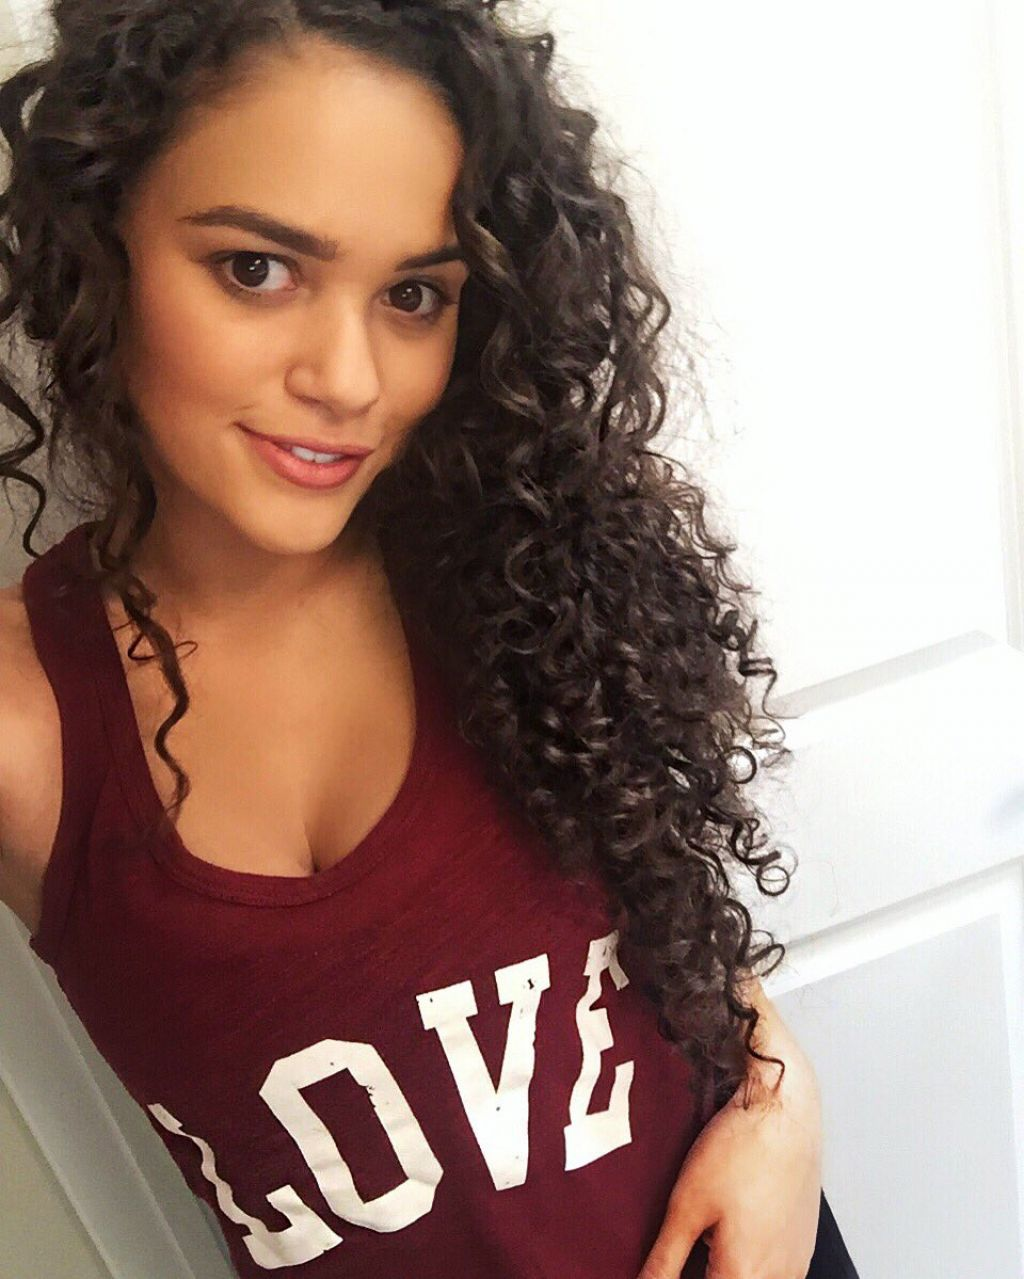 madison pettis 2017 with straight hair - photo #37